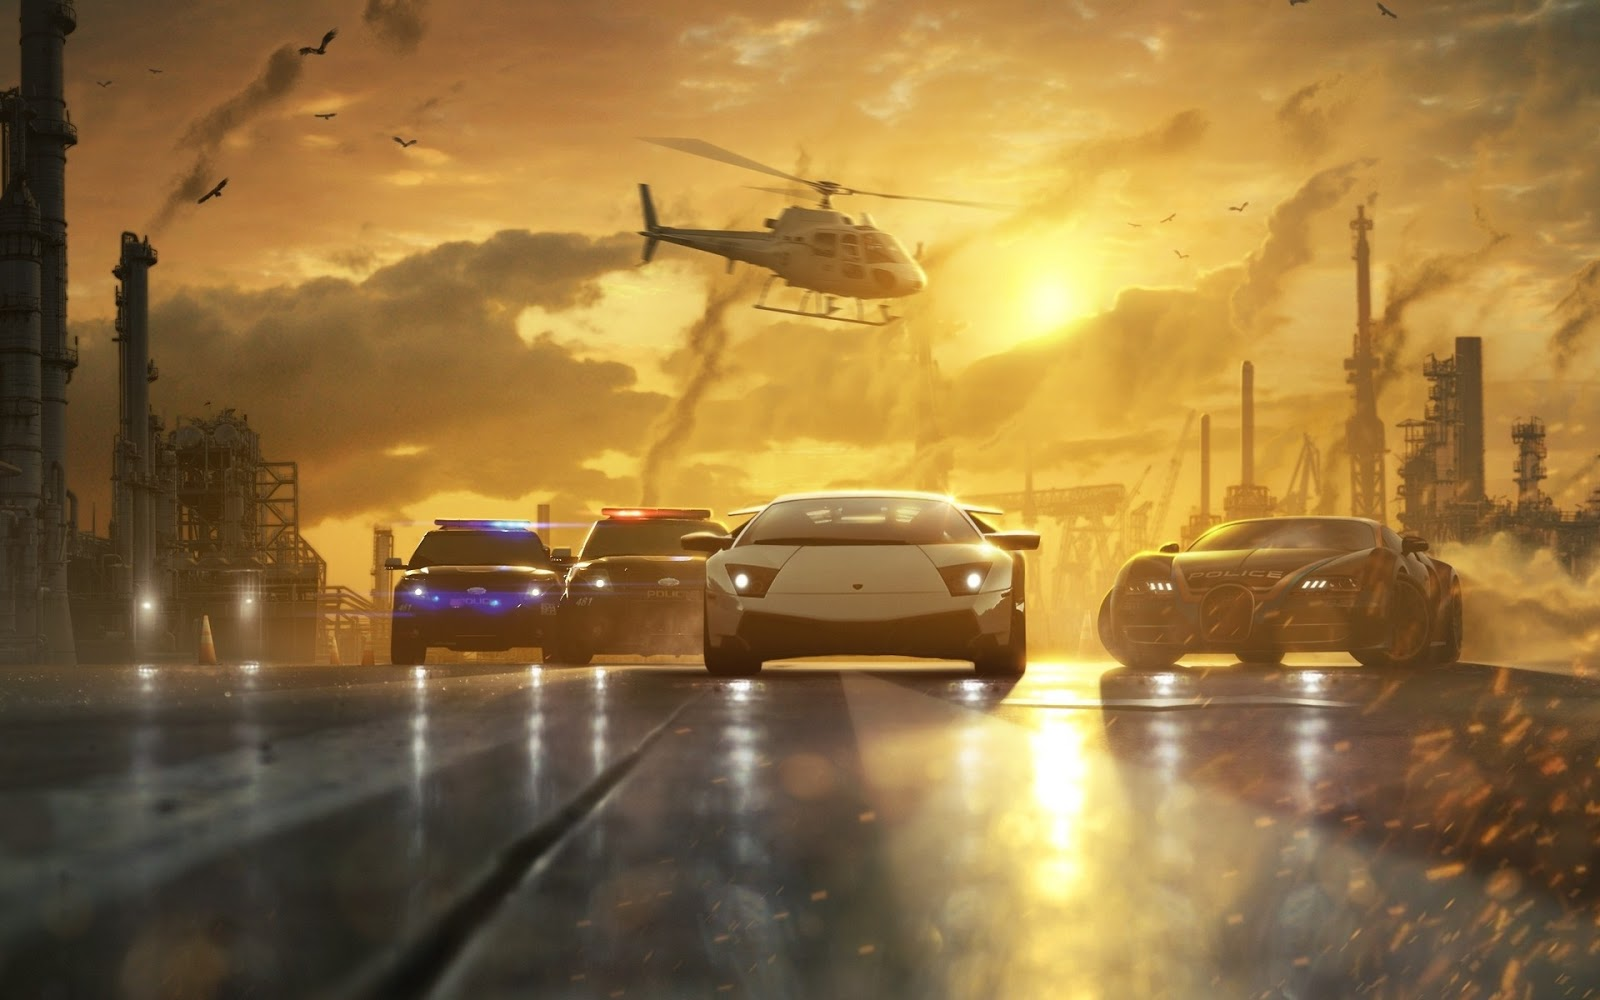 http://4.bp.blogspot.com/-lhIbhH17Ep4/UZmXbqjqqNI/AAAAAAAAN9s/qNntxNAw2E8/s1600/need-for-speed-most-wanted-2012-game-cars-wallpaper-1920x1200.jpg